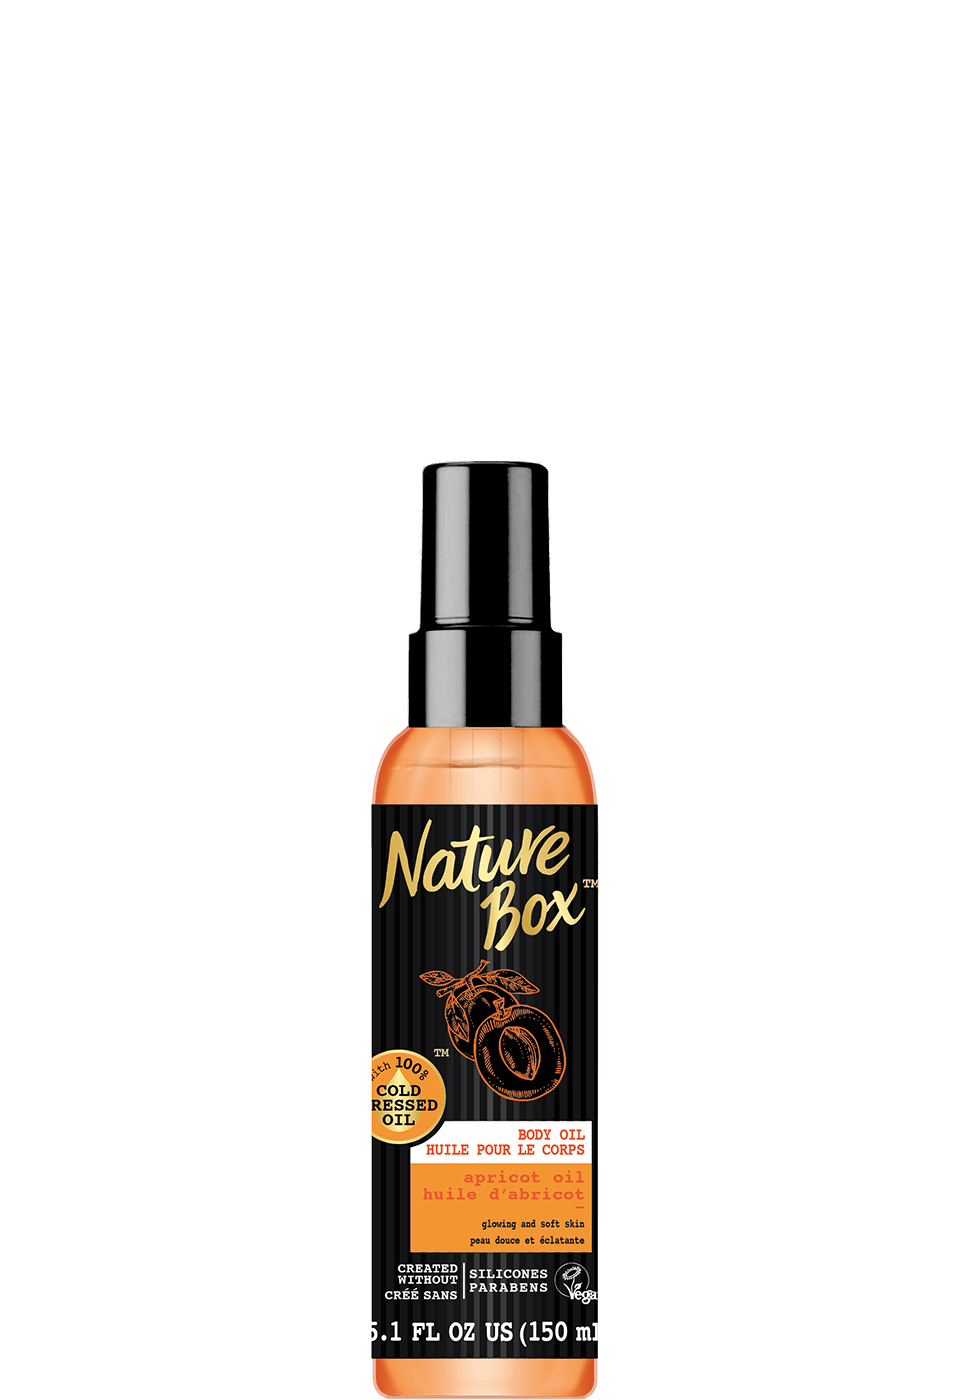 naturebox_us_apricot_body_oil_970x1400